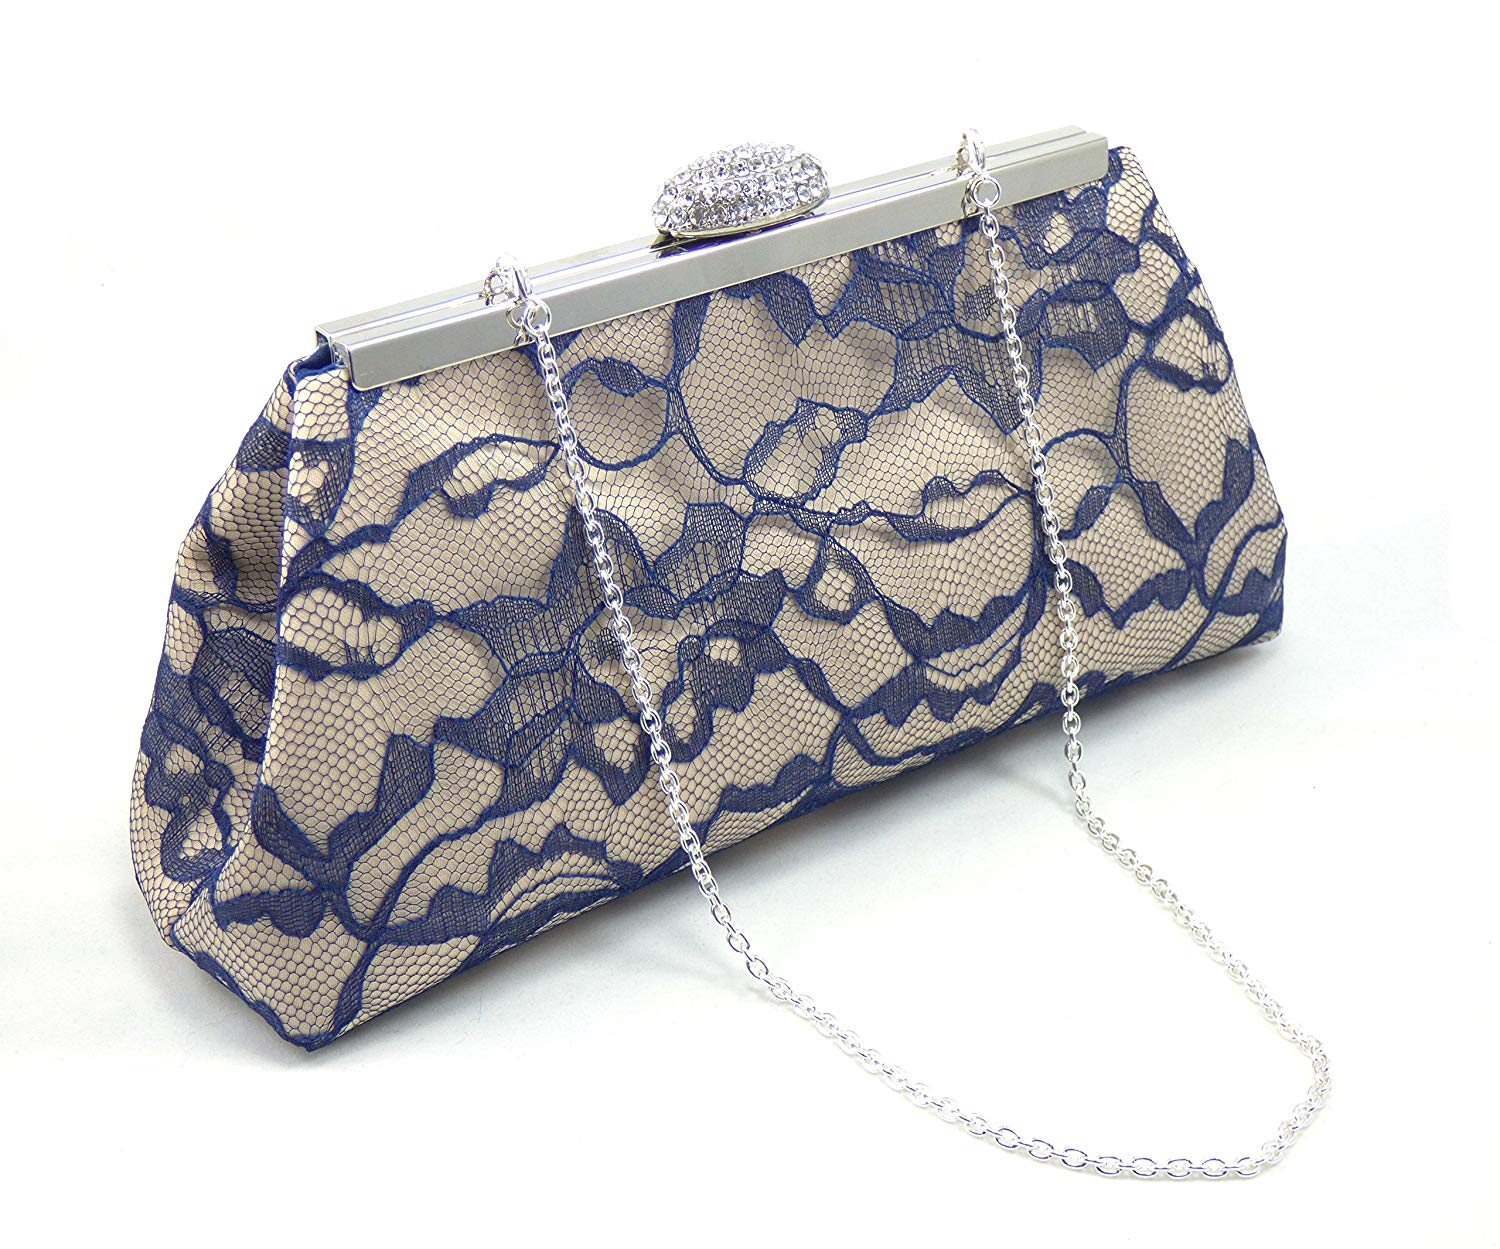 Champagne and Navy Blue Bridal Clutch, Something Blue, Bridesmaid Gift, Mother of the Bride Clutch, Bridesmaid Clutch